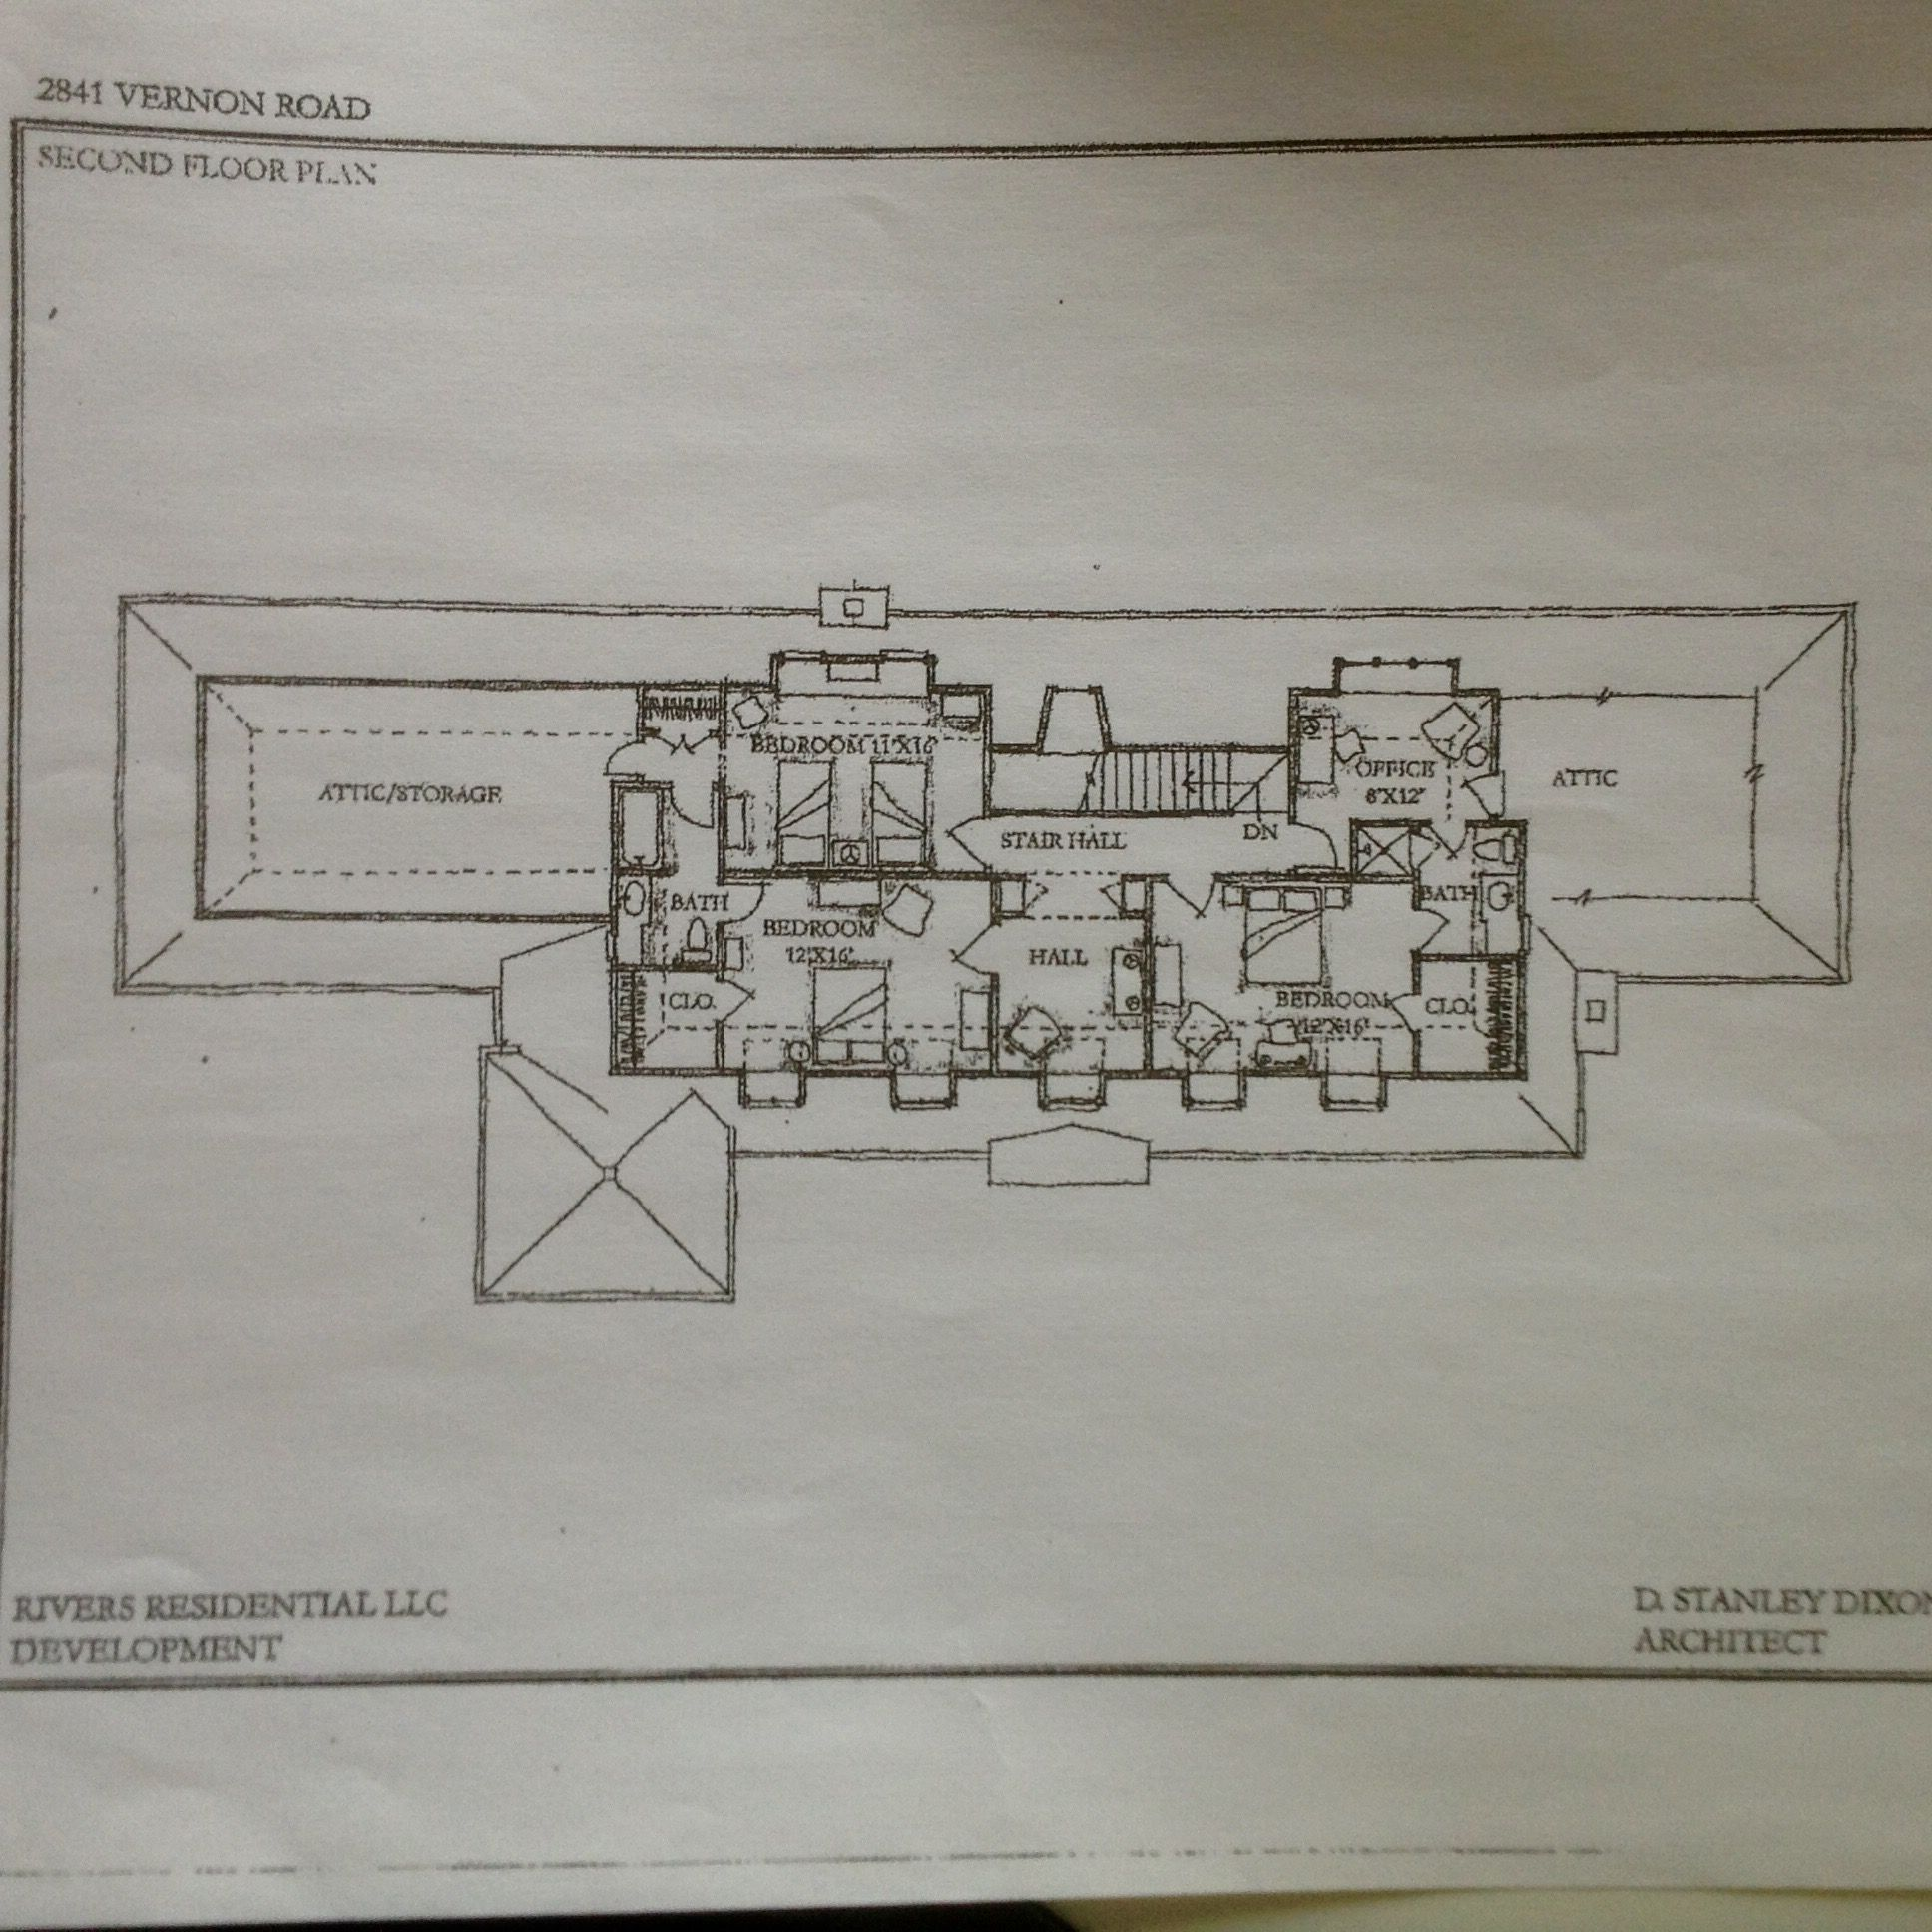 2841 Vernon Rd Nw Atlanta Ga Upper Level Luxury House Plans Floor Plans Facade